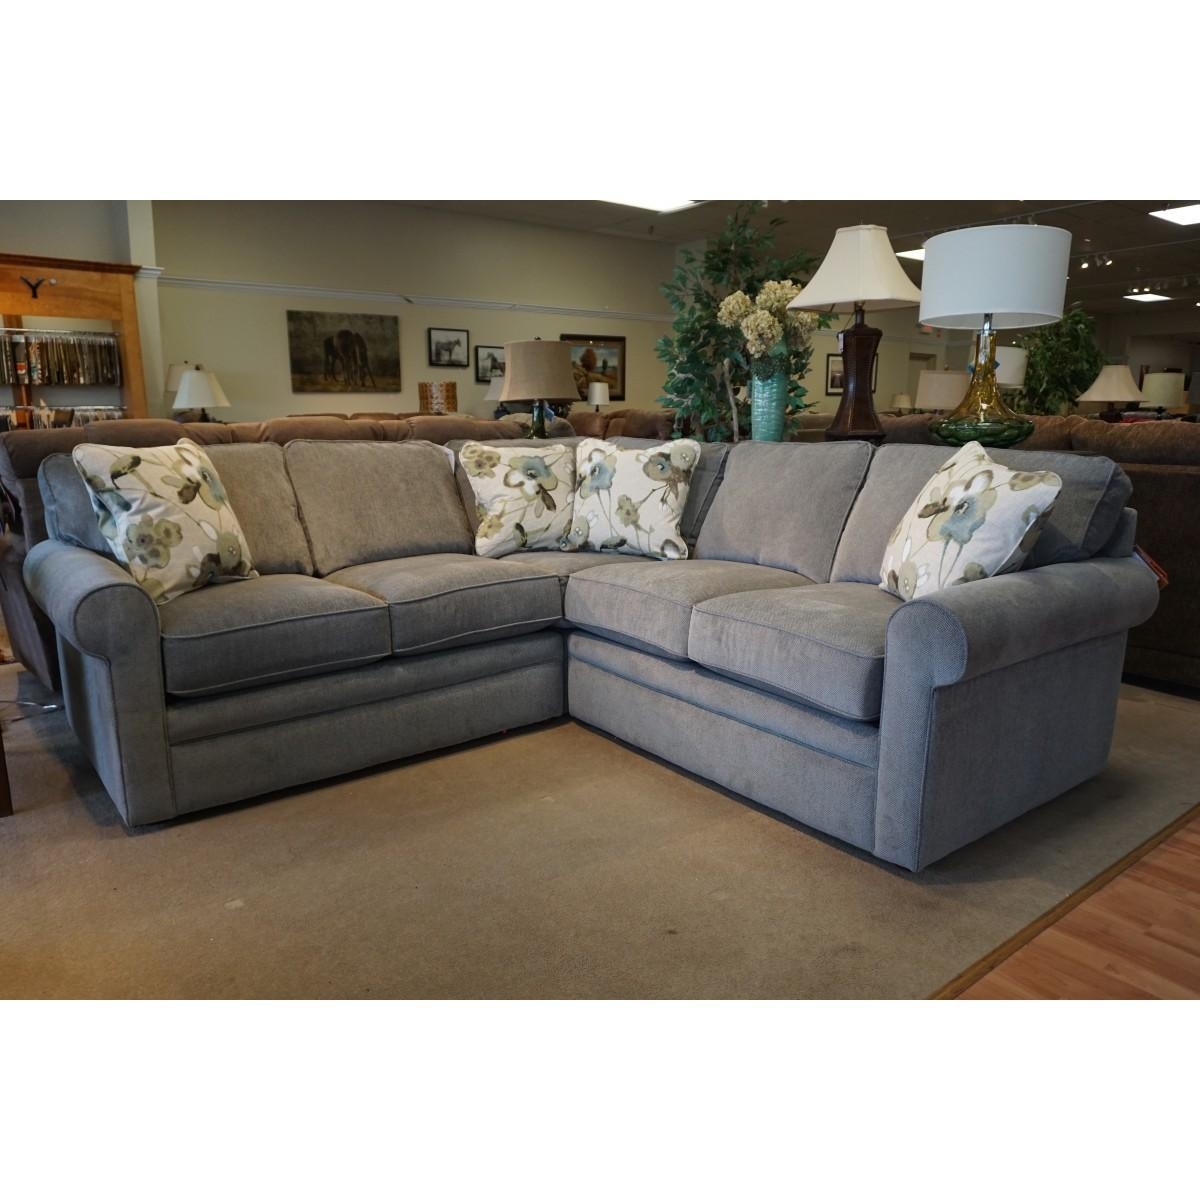 Z-Boy Collins Sectional in Lazyboy Sectional Sofa